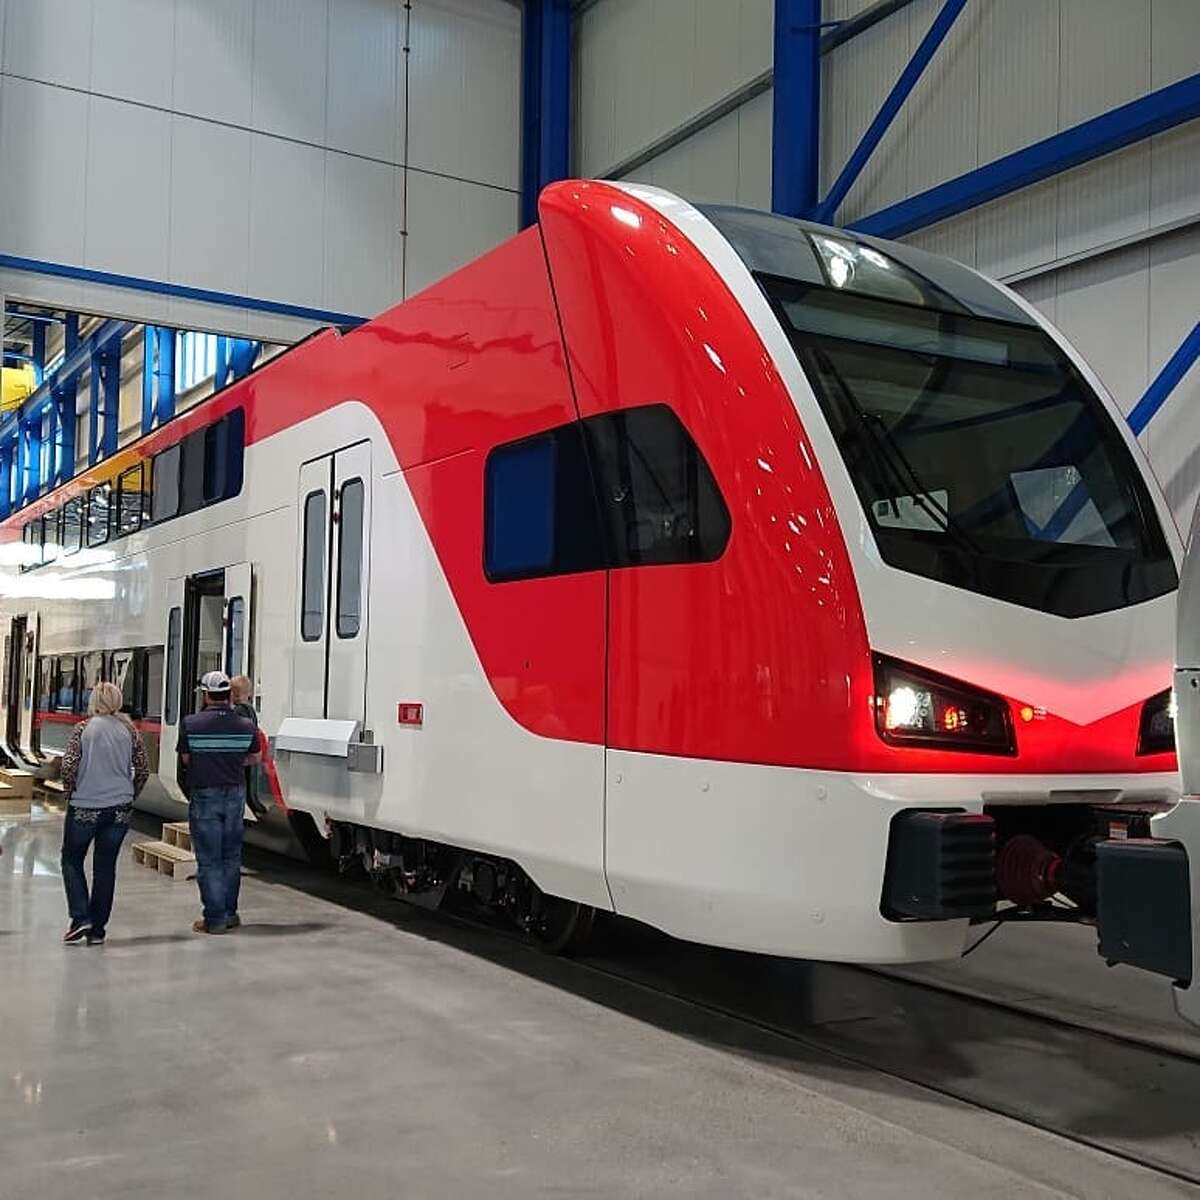 These images from the Stadler factory in Utah show what the fleet of new, electrified Caltrain trains will look like after they begin arriving in the Bay Area next year.